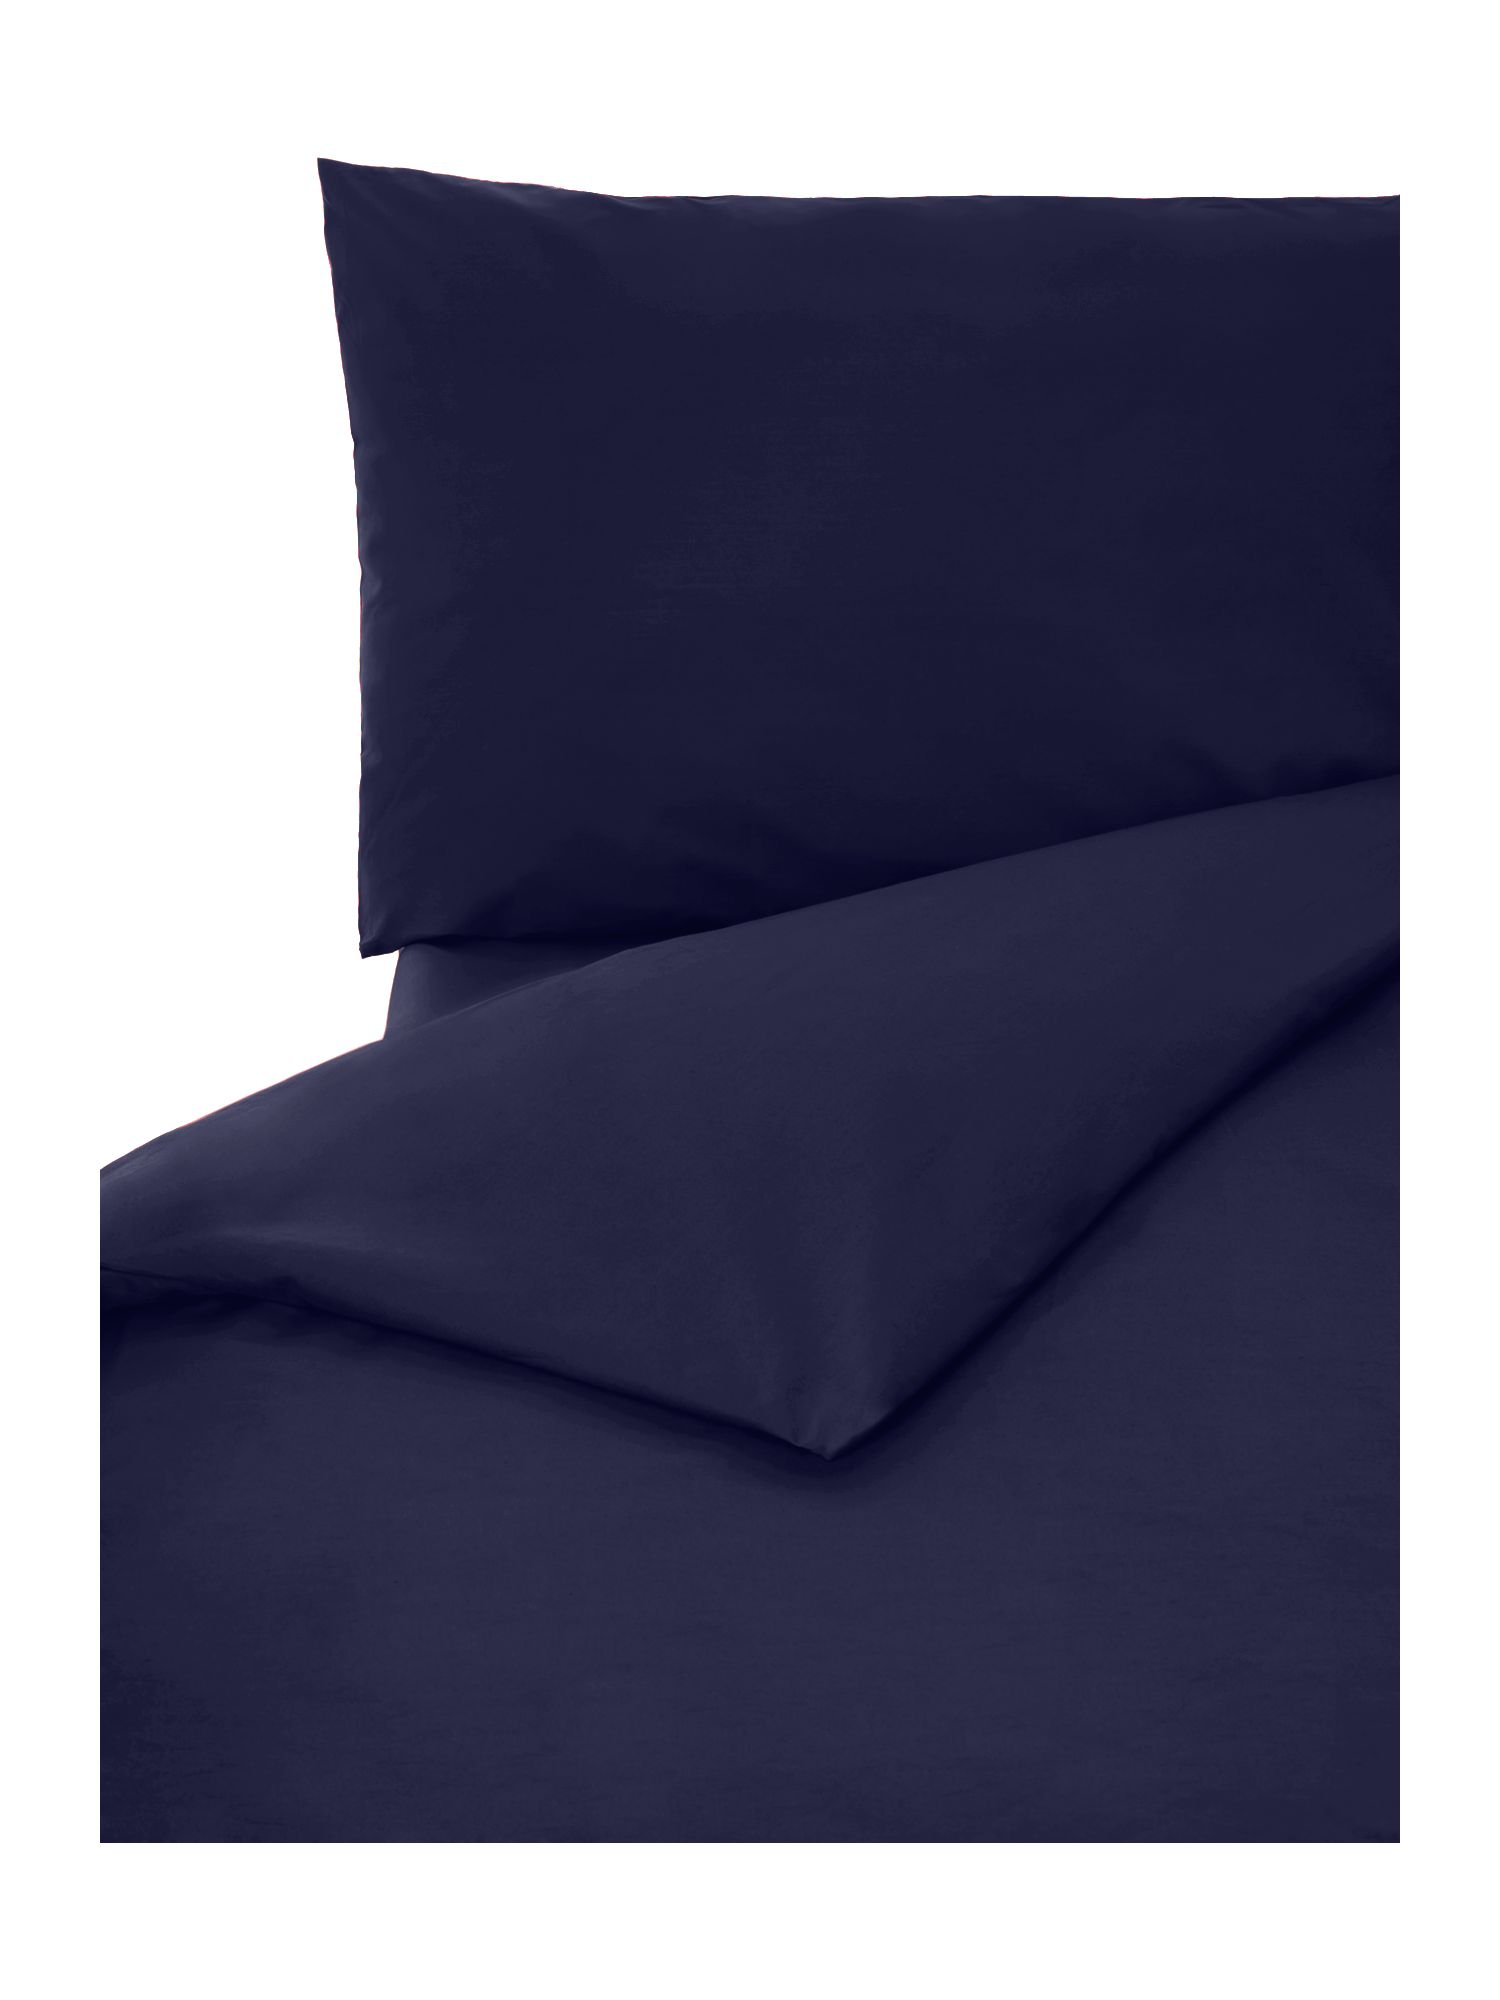 100% cotton single duvet cover french navy